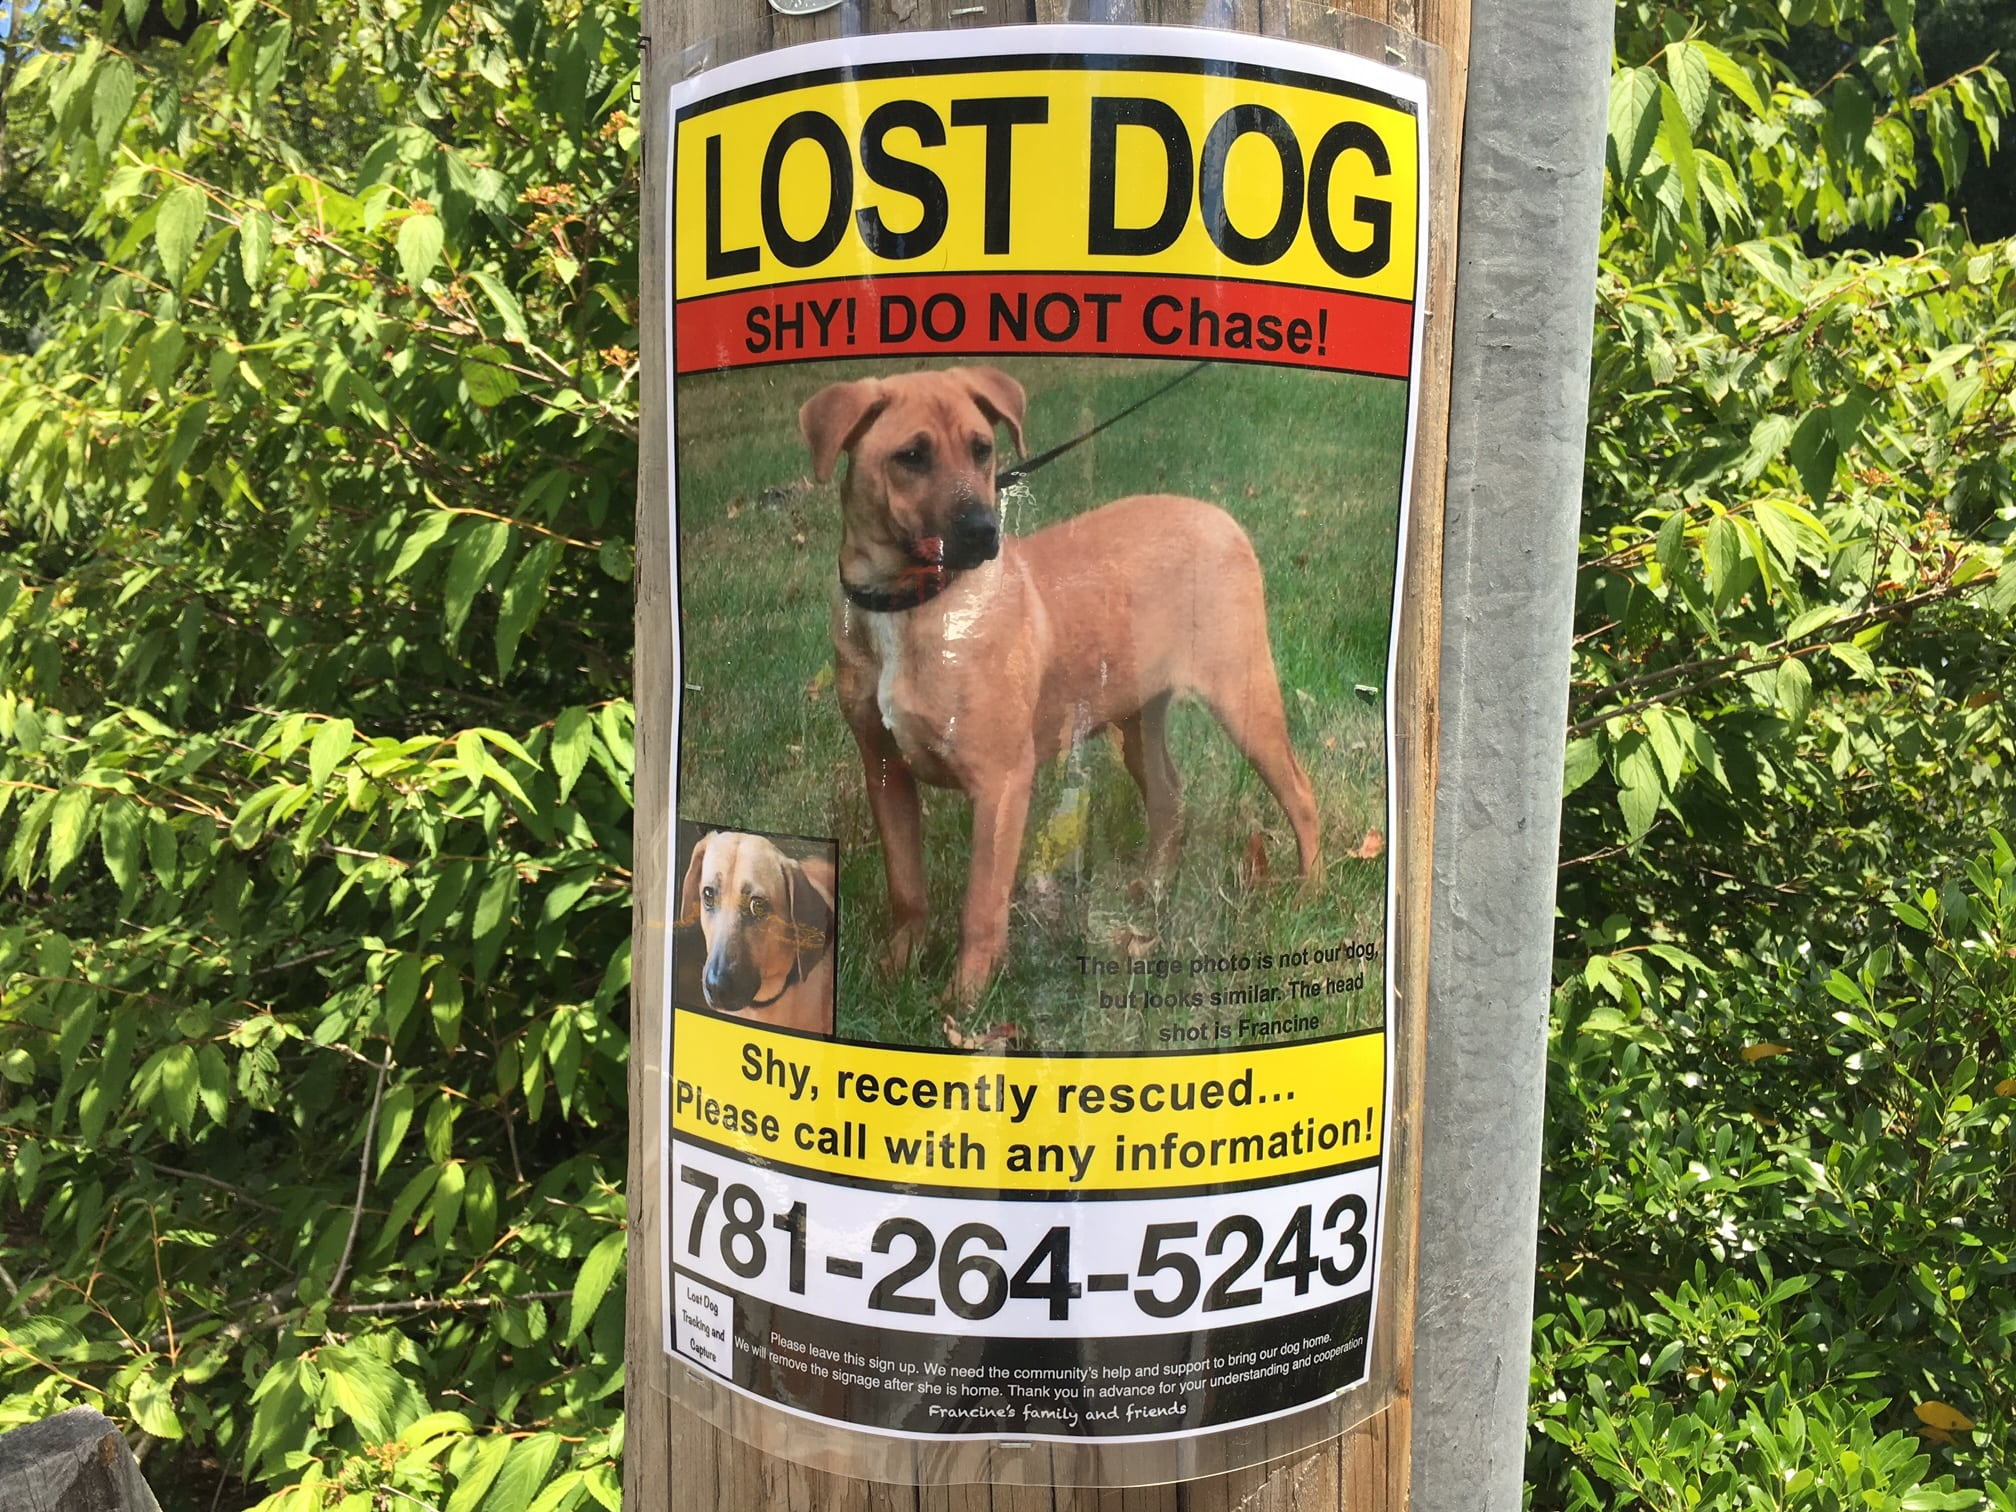 Lost dog, Wellesley